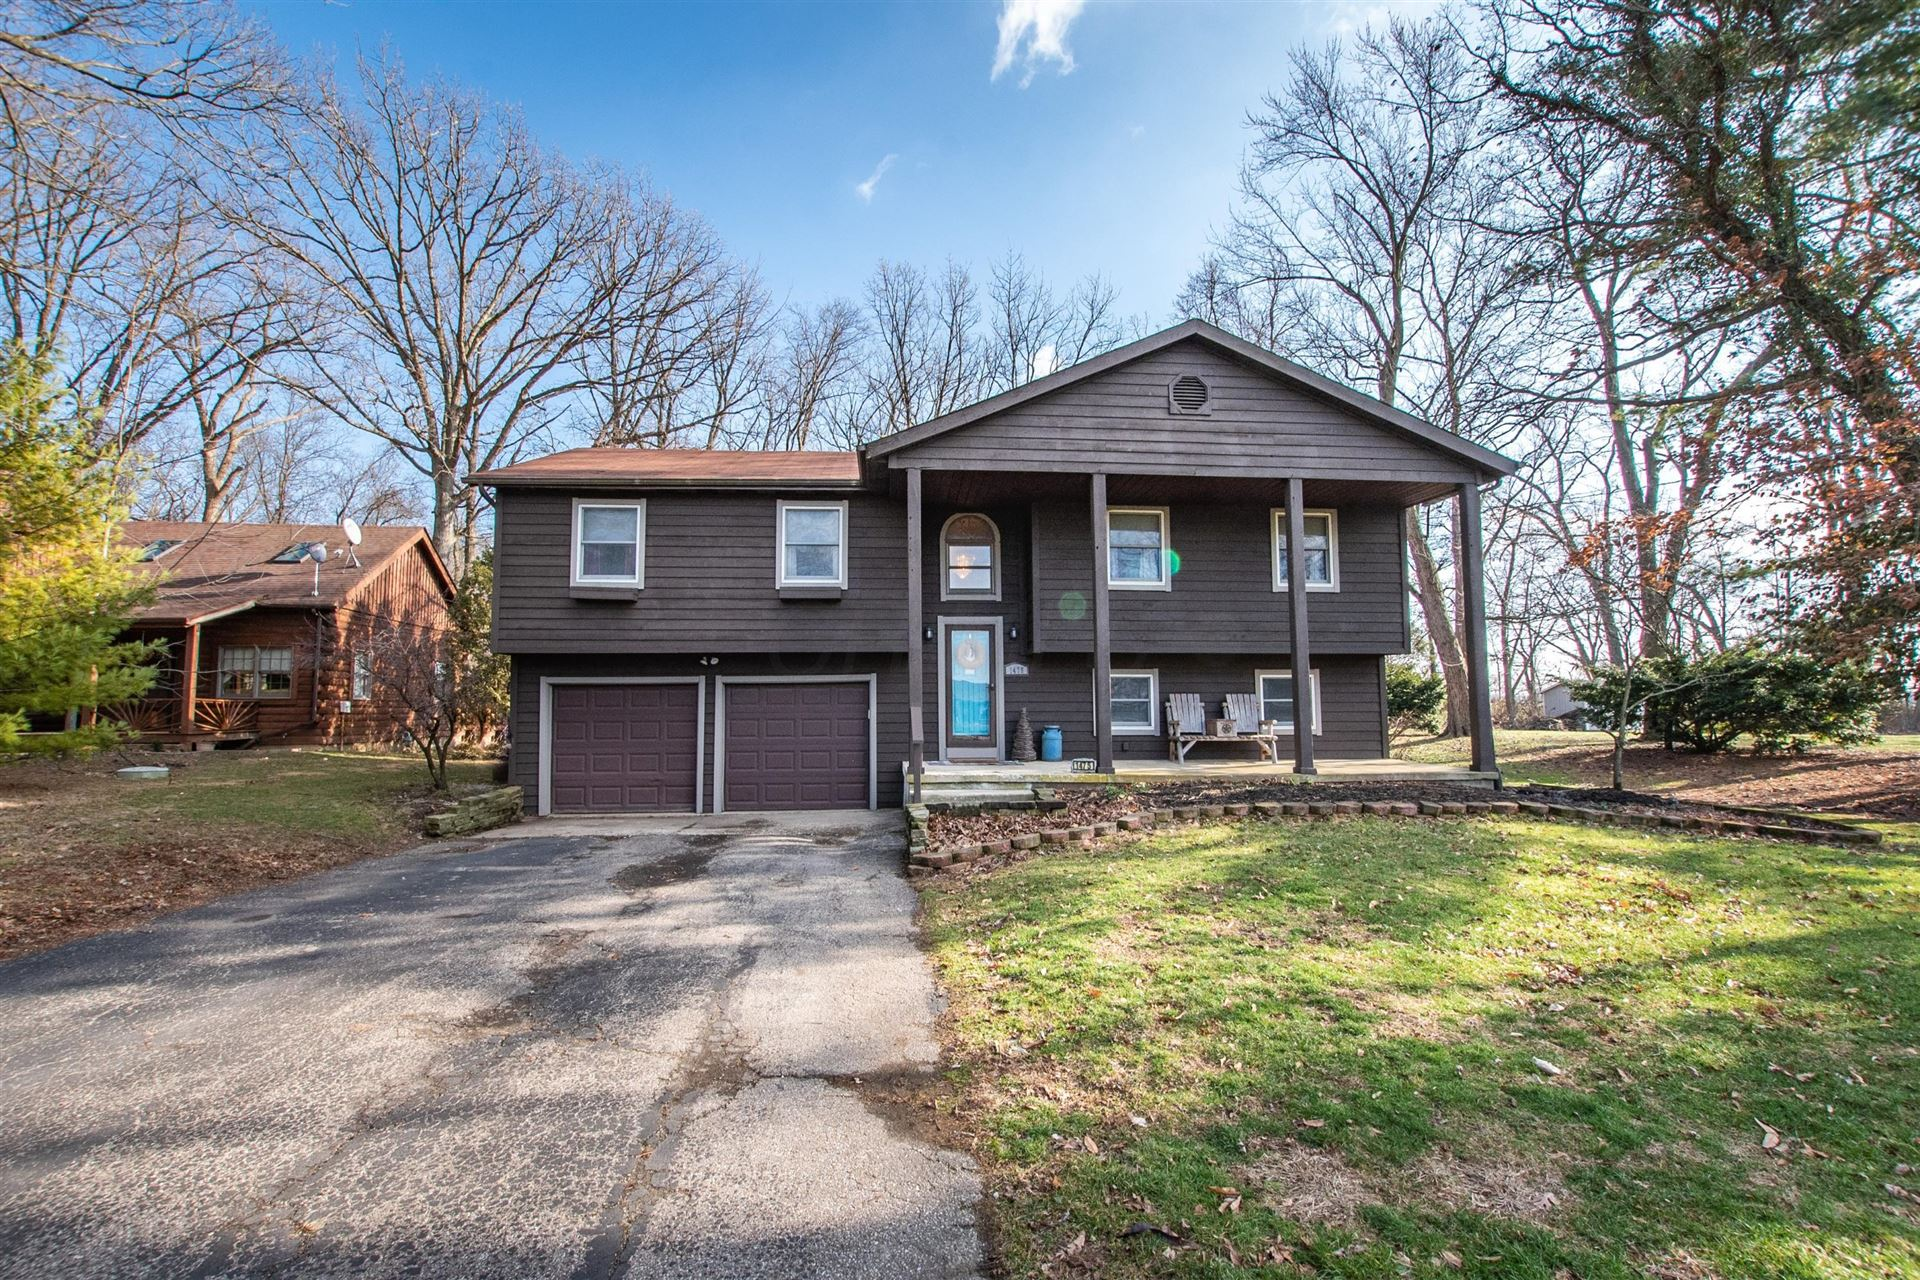 Photo for 1475 Itawamba Trail, London, OH 43140 (MLS # 220001489)